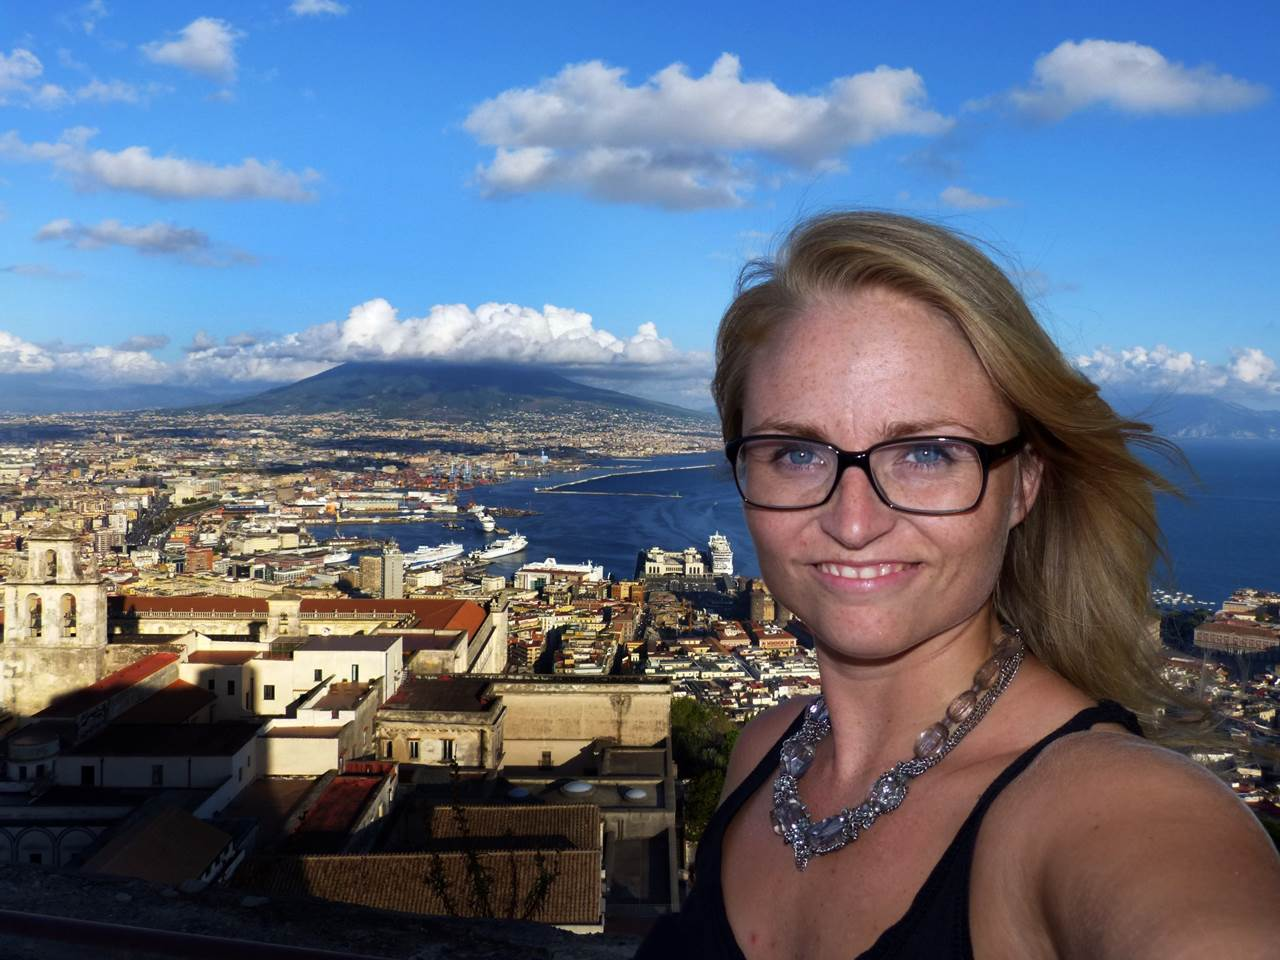 View on the volcano Vesuvius in Naples